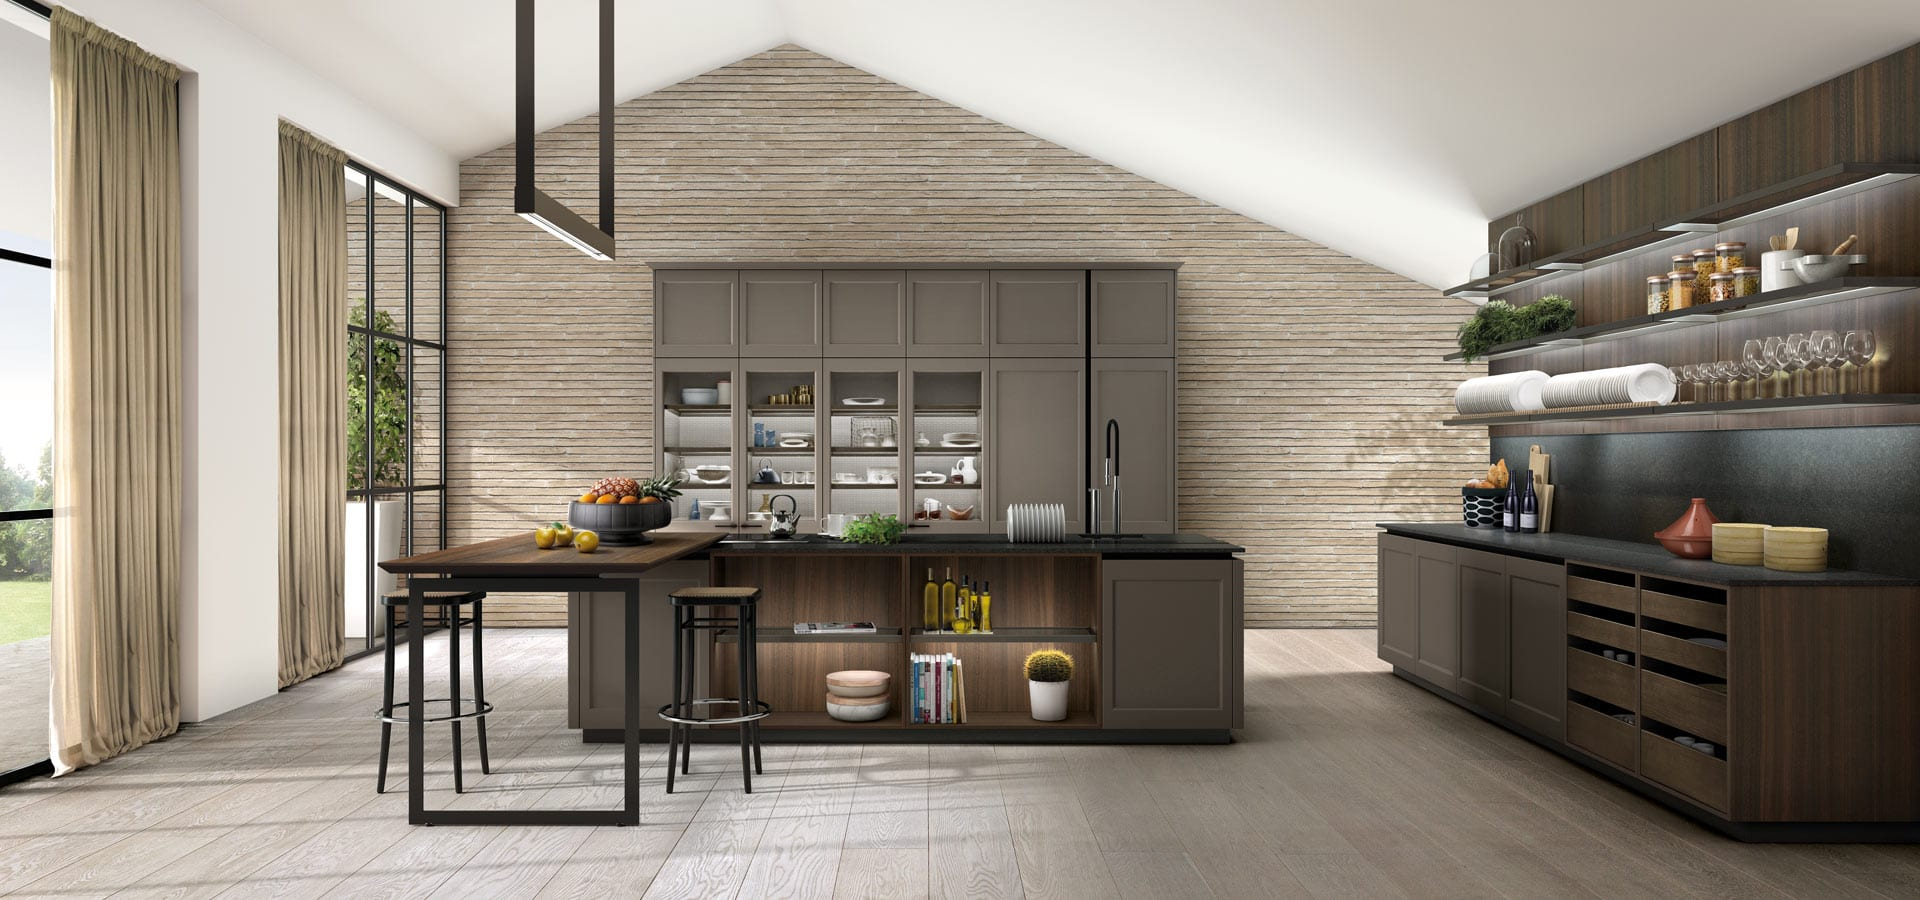 Transitional style, a modern kitchen with tradional flare.